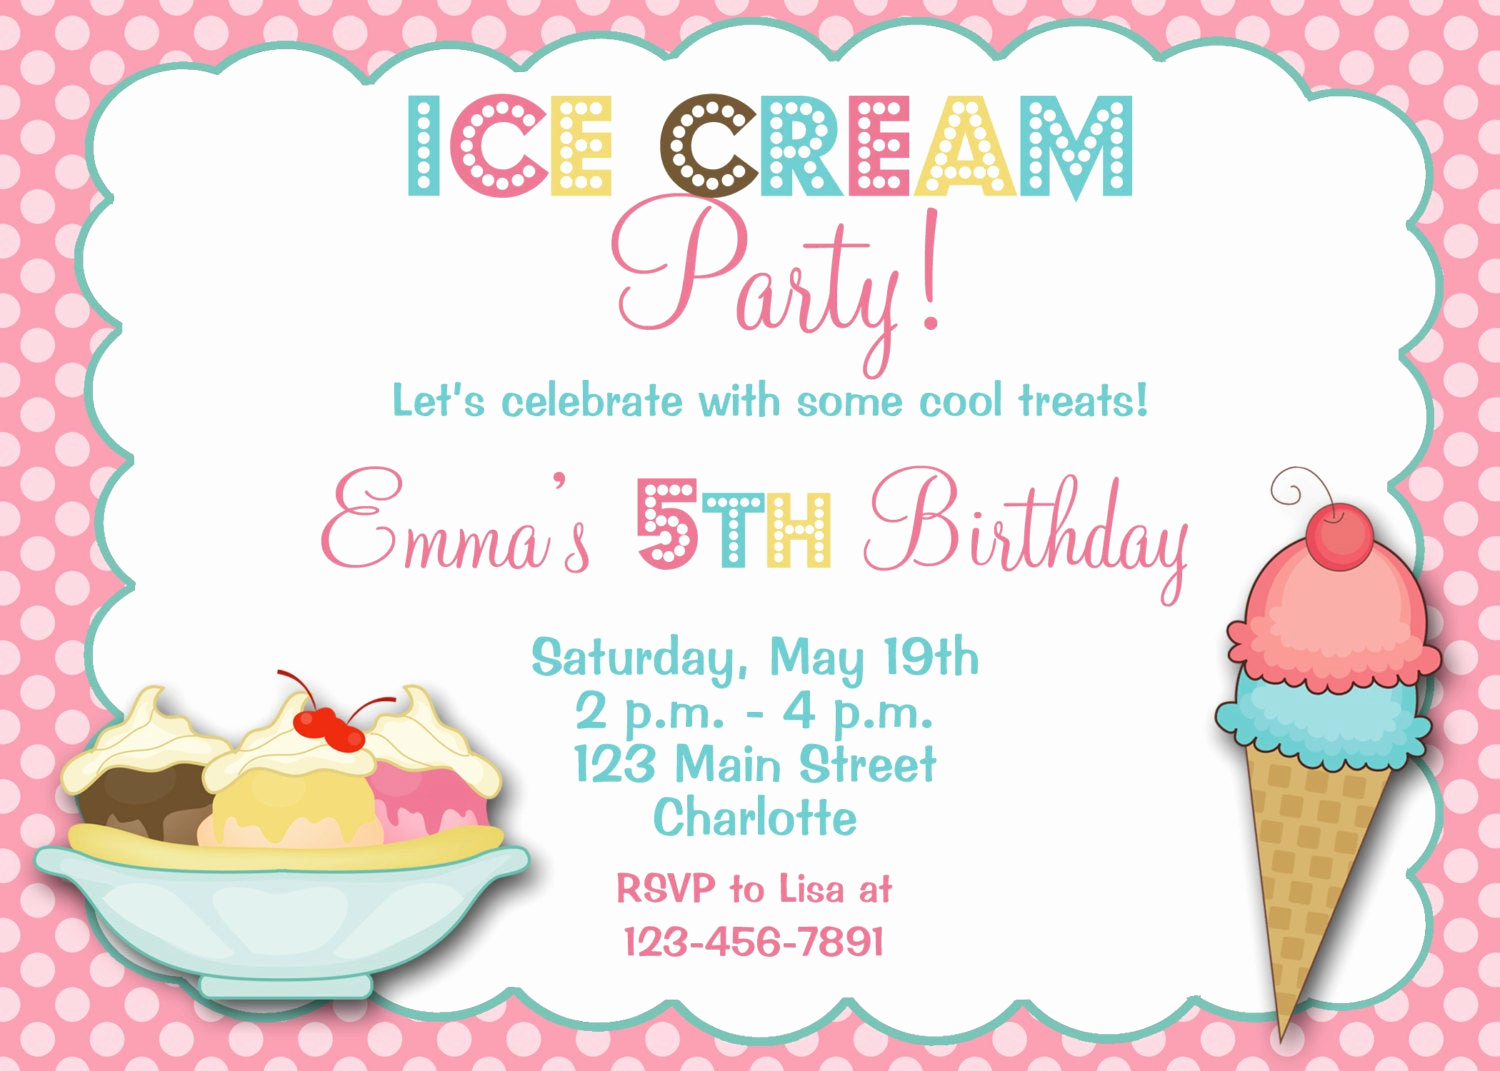 Ice Cream social Invitation Wording Beautiful Ice Cream Party Birthday Invitation Ice Cream by